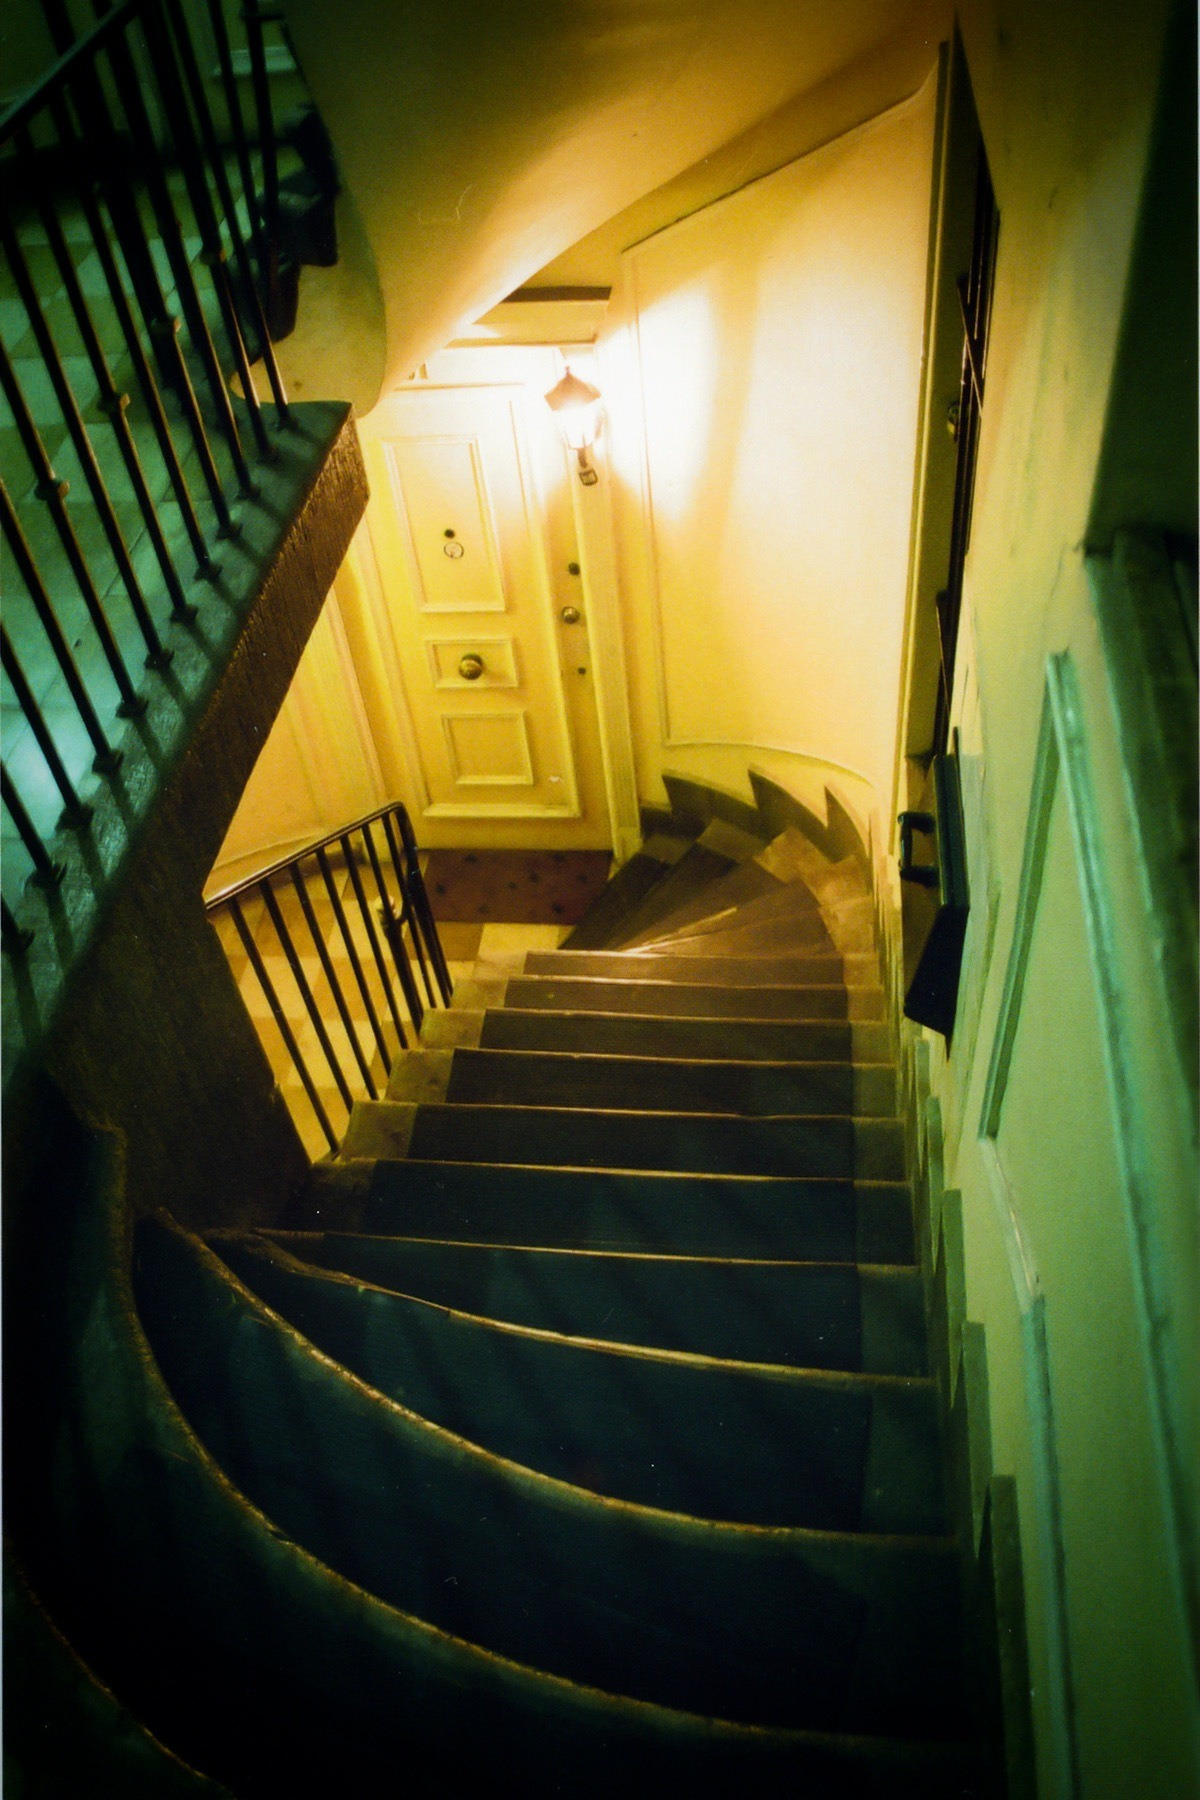 – Stairs Kodak Pro Image 100 forced to 400 Mamiya Lens 28mm